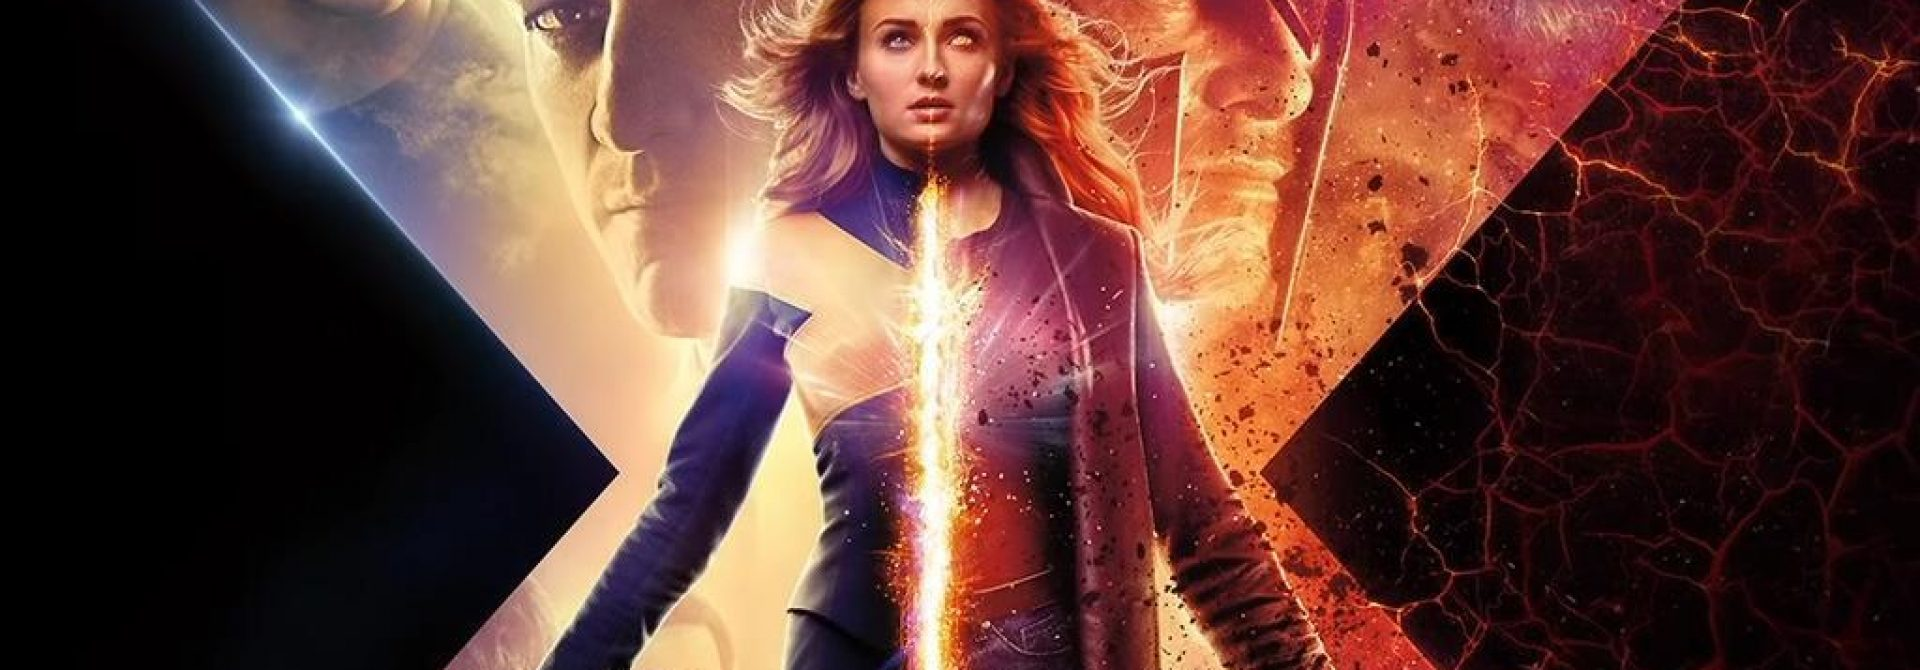 Dark Phoenix: The Final Trailer